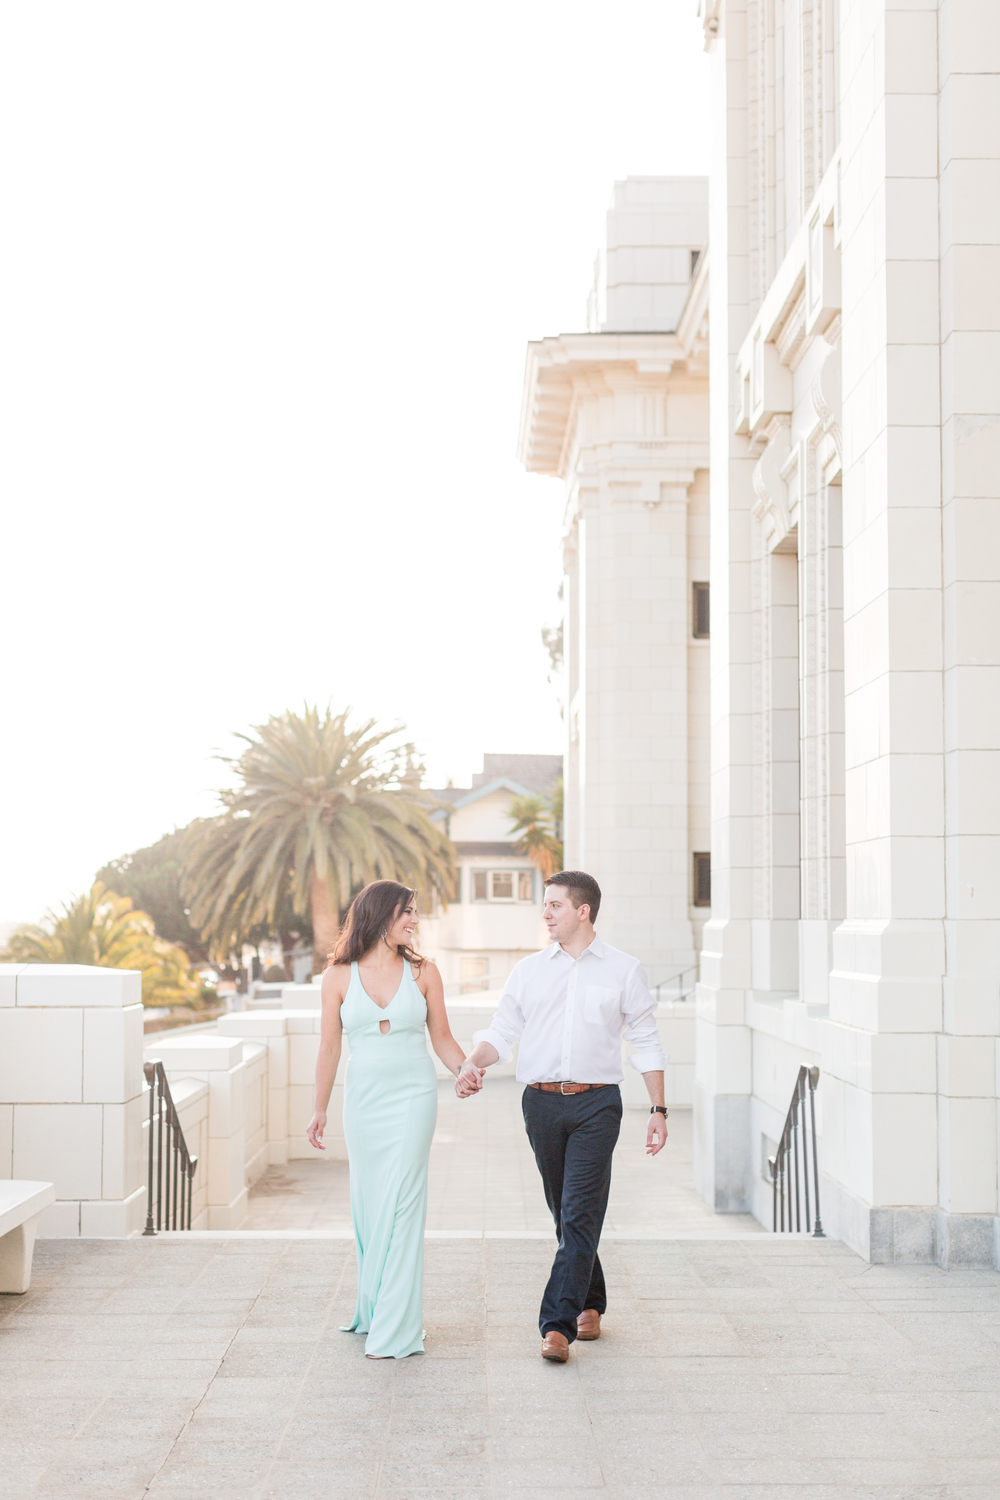 CourtneyPaigePhotography_EngagementPhotography_Soto-16.jpg